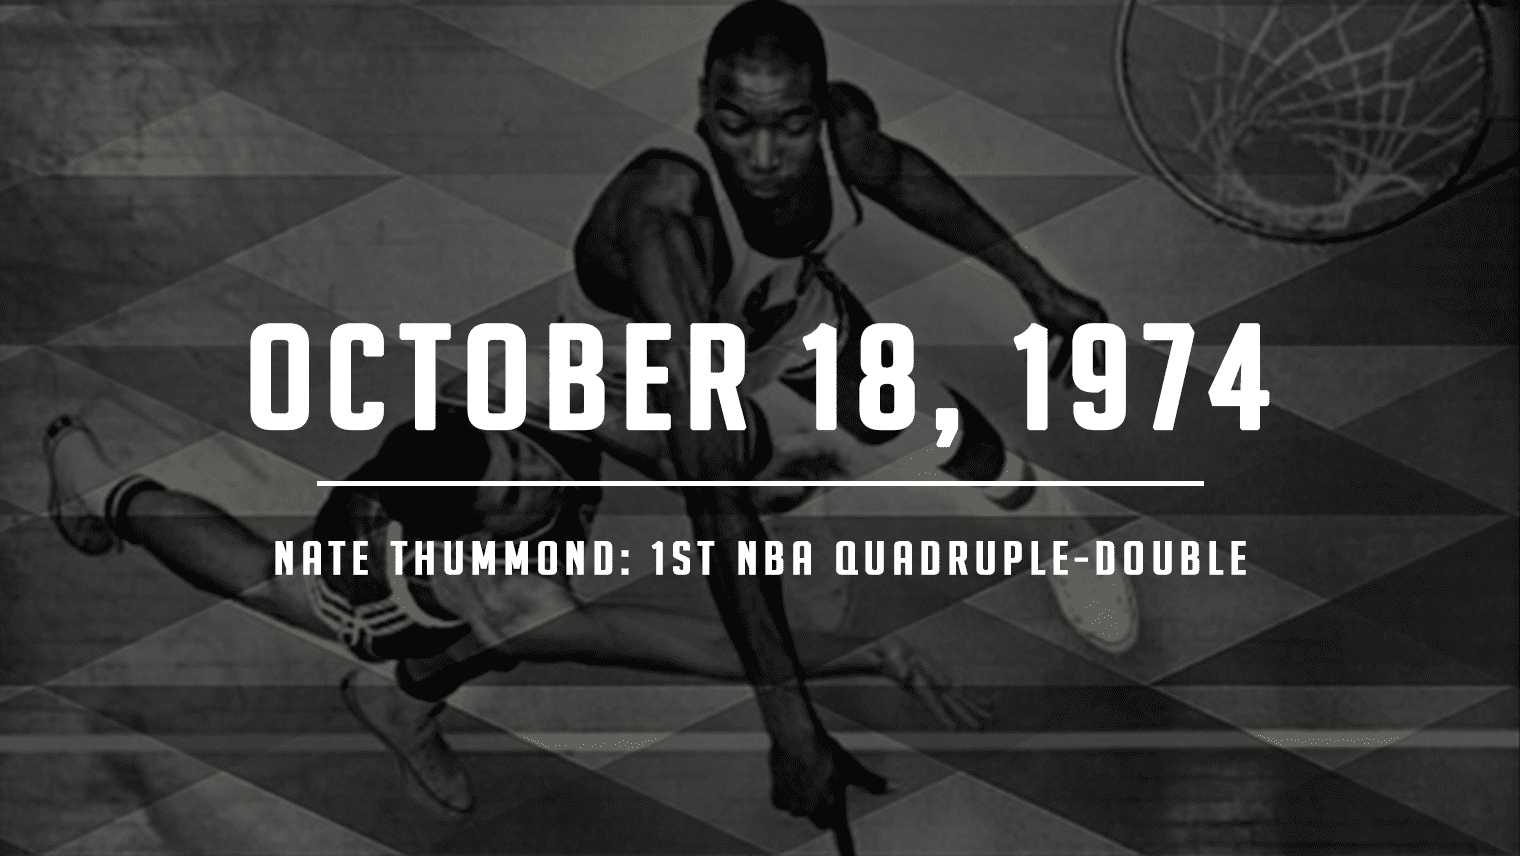 On this day 45 years ago, Nate Thurmond recorded the first-ever quadruple-double in NBA history and remains one of four players to ever do it.